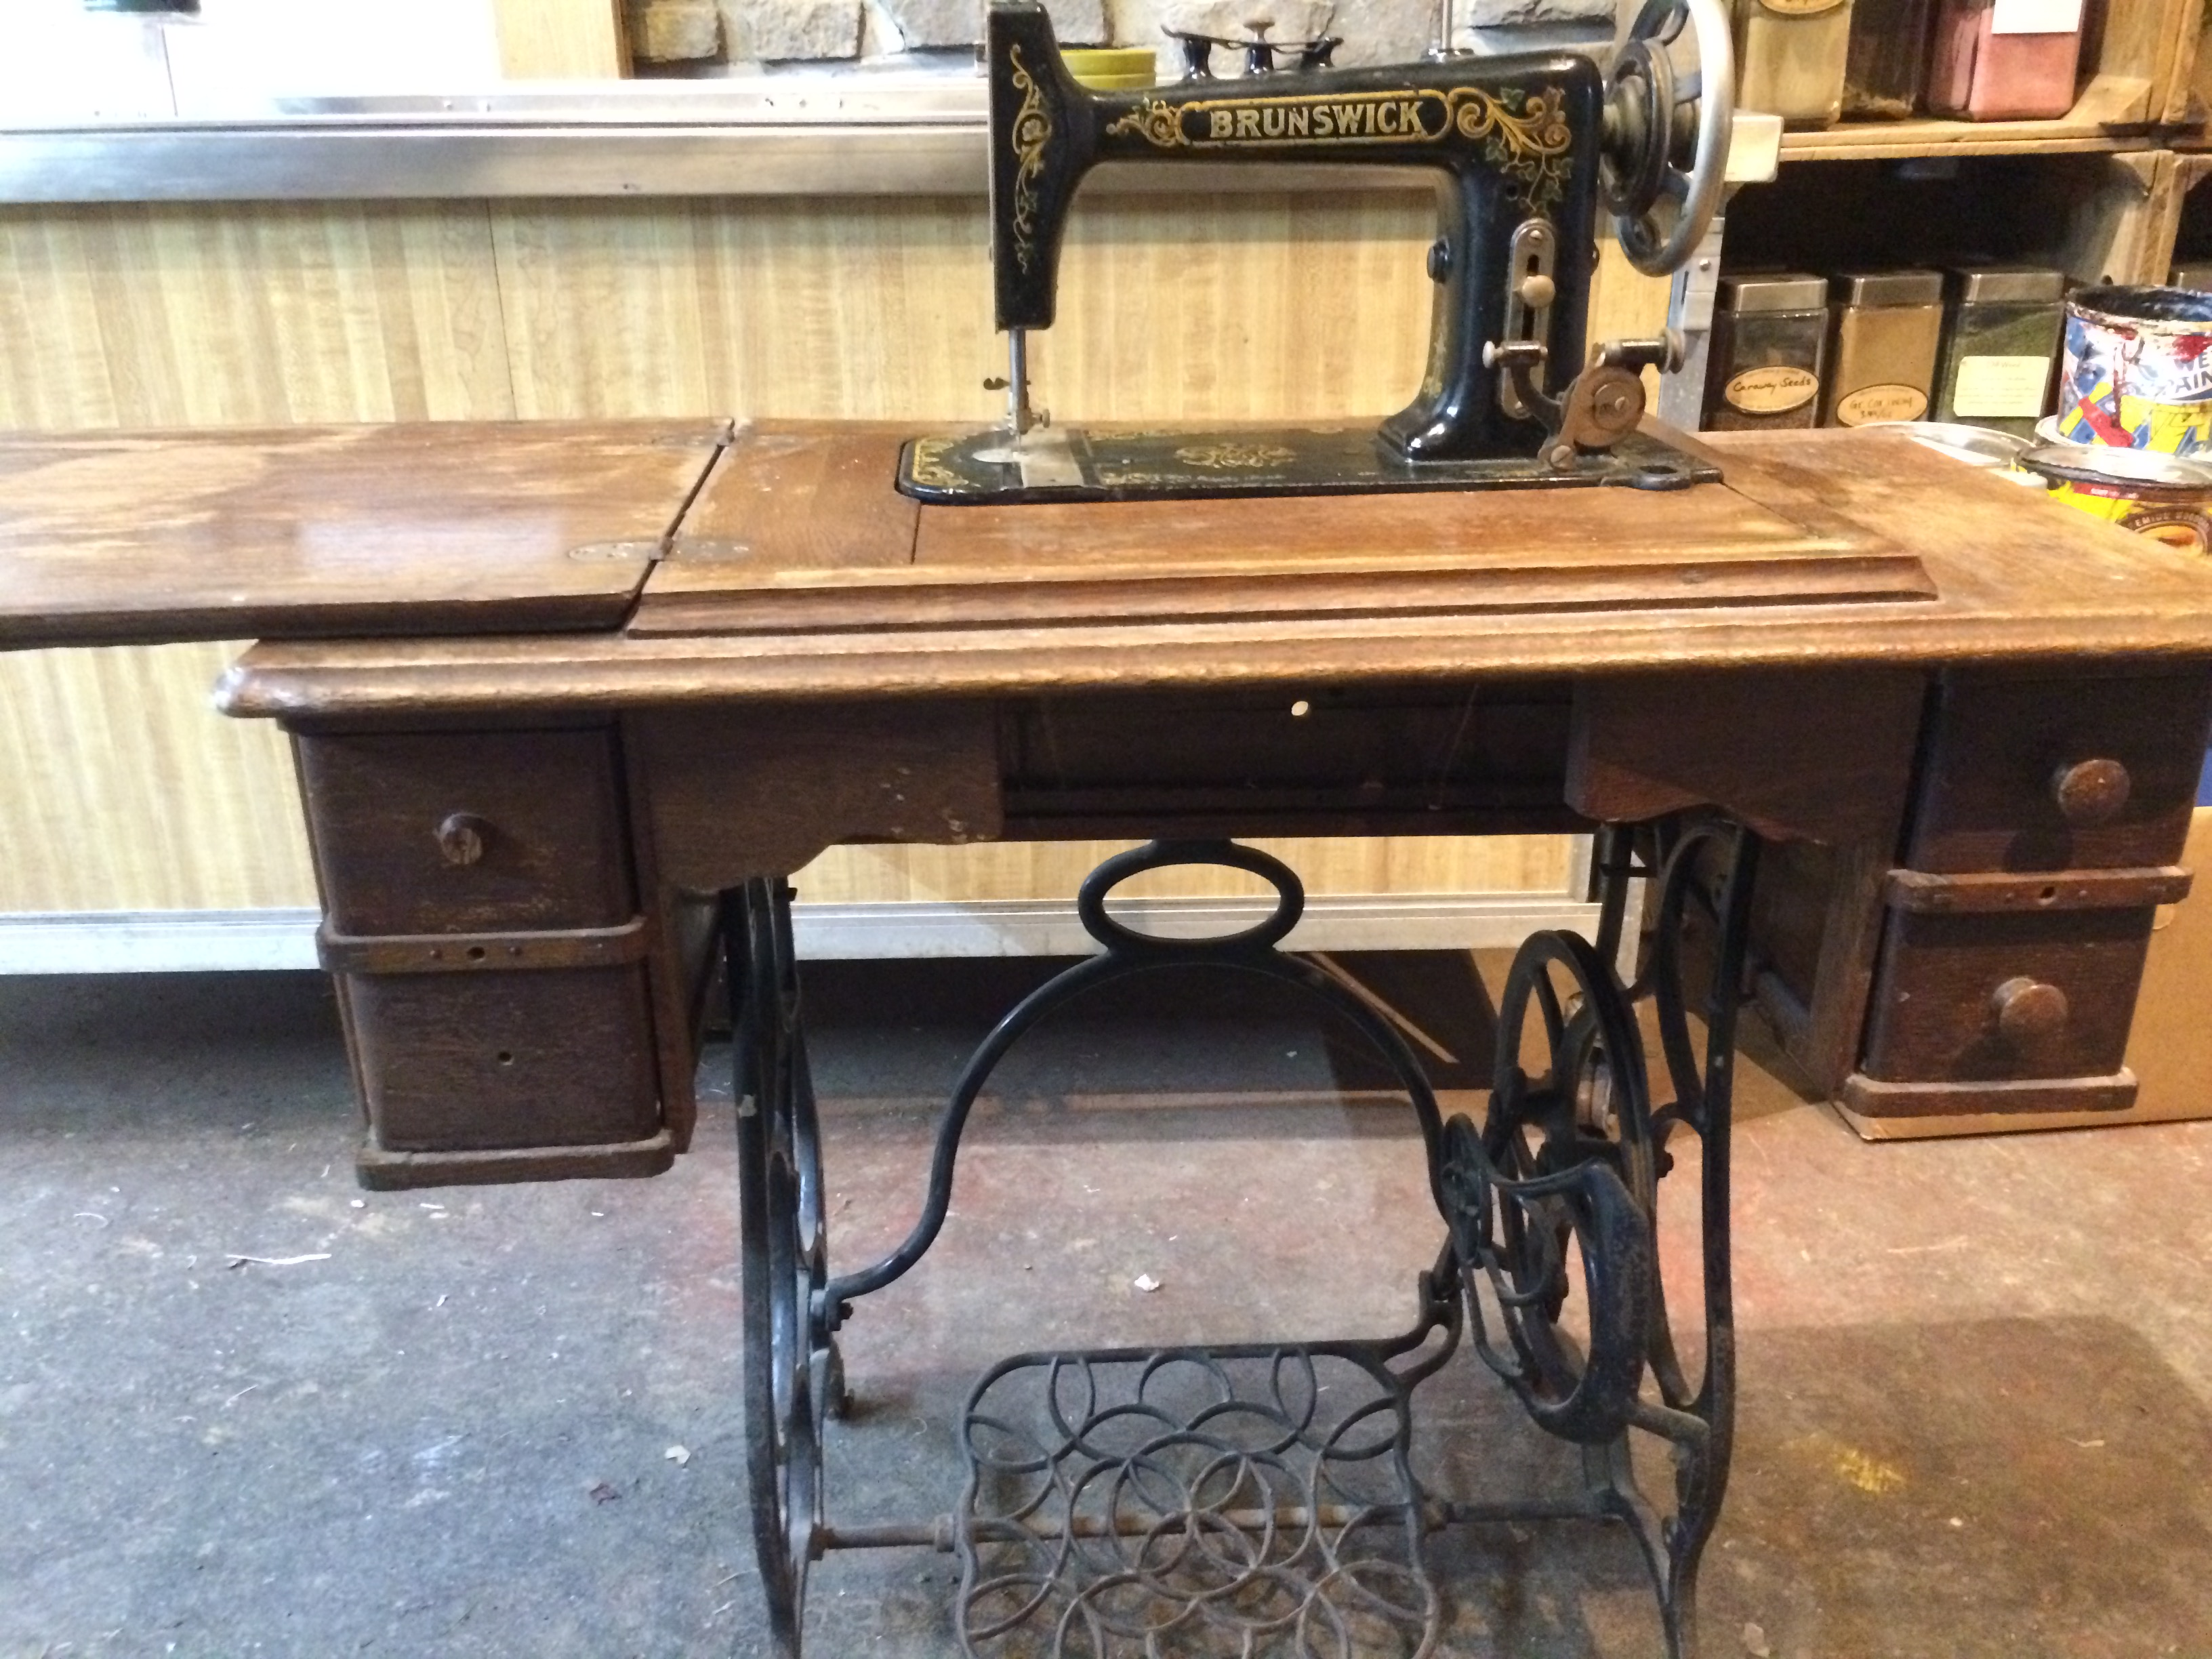 Brunswick folding sewing table for sale antiques classifieds i have an antique brunswick sewing table for sale with pedal on the bottom the sewing machine folds up and folds down back into table form sciox Gallery